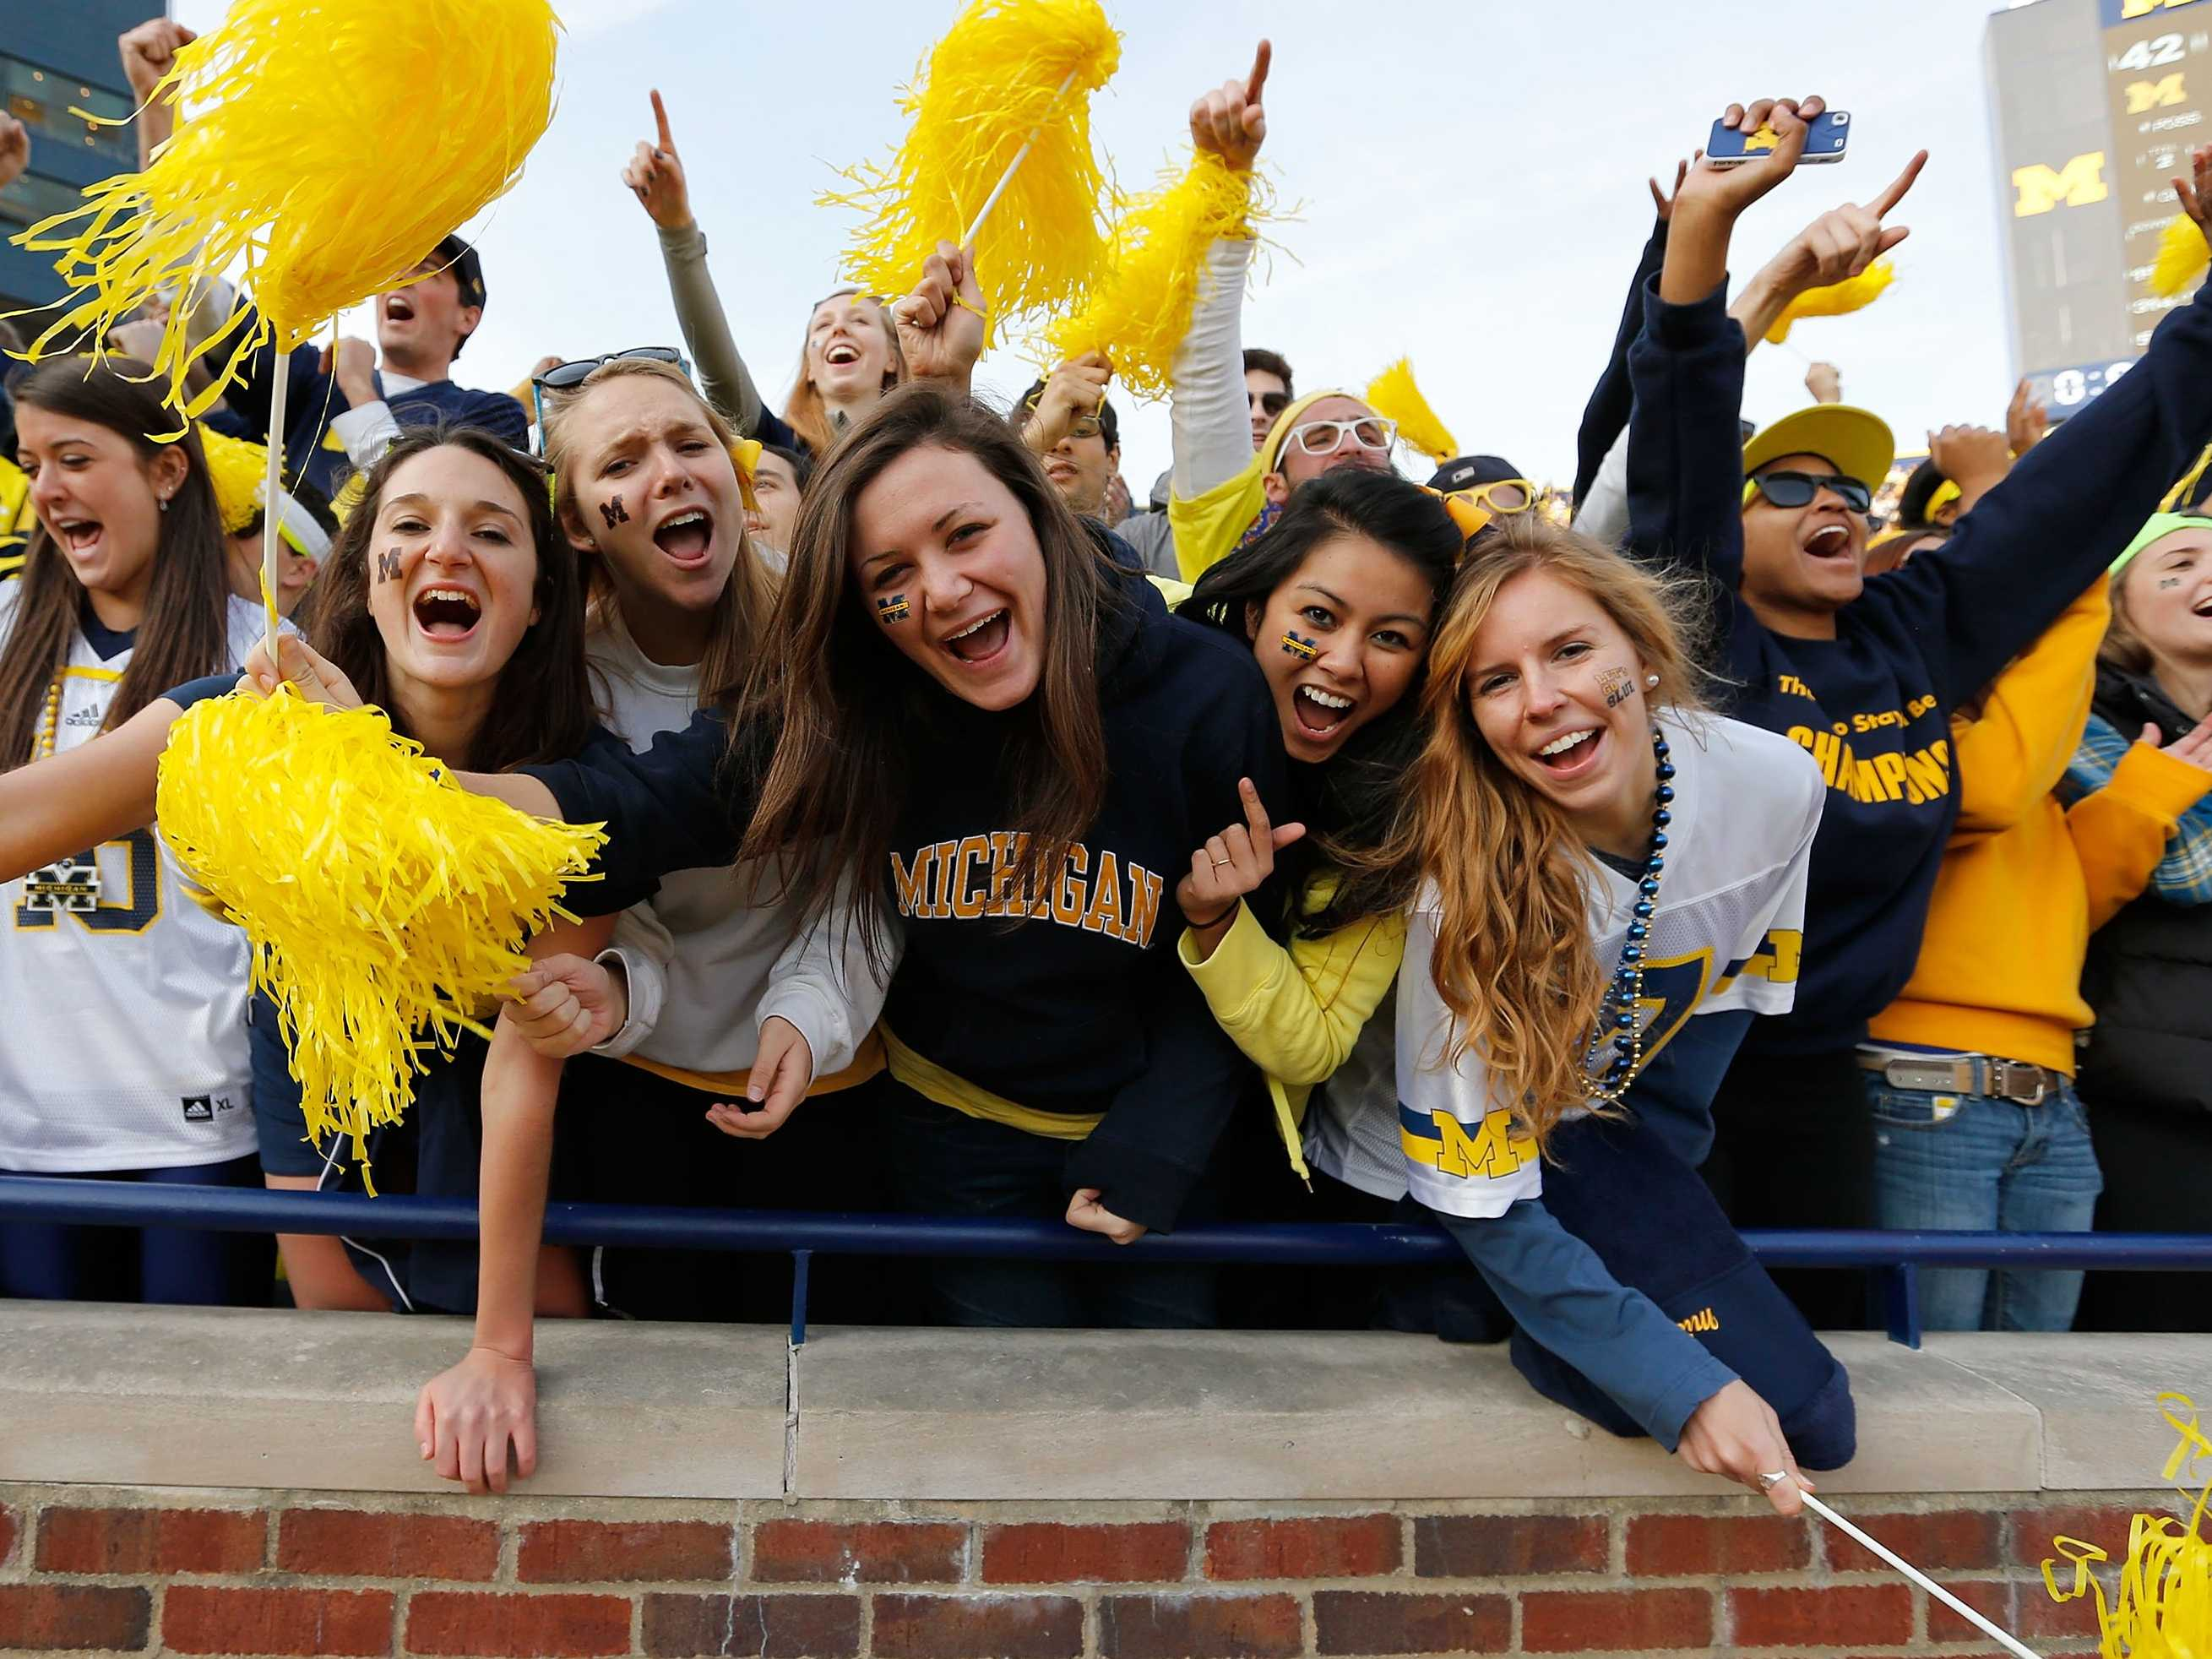 University of michigan is going to tell mom and dad if you misbehave